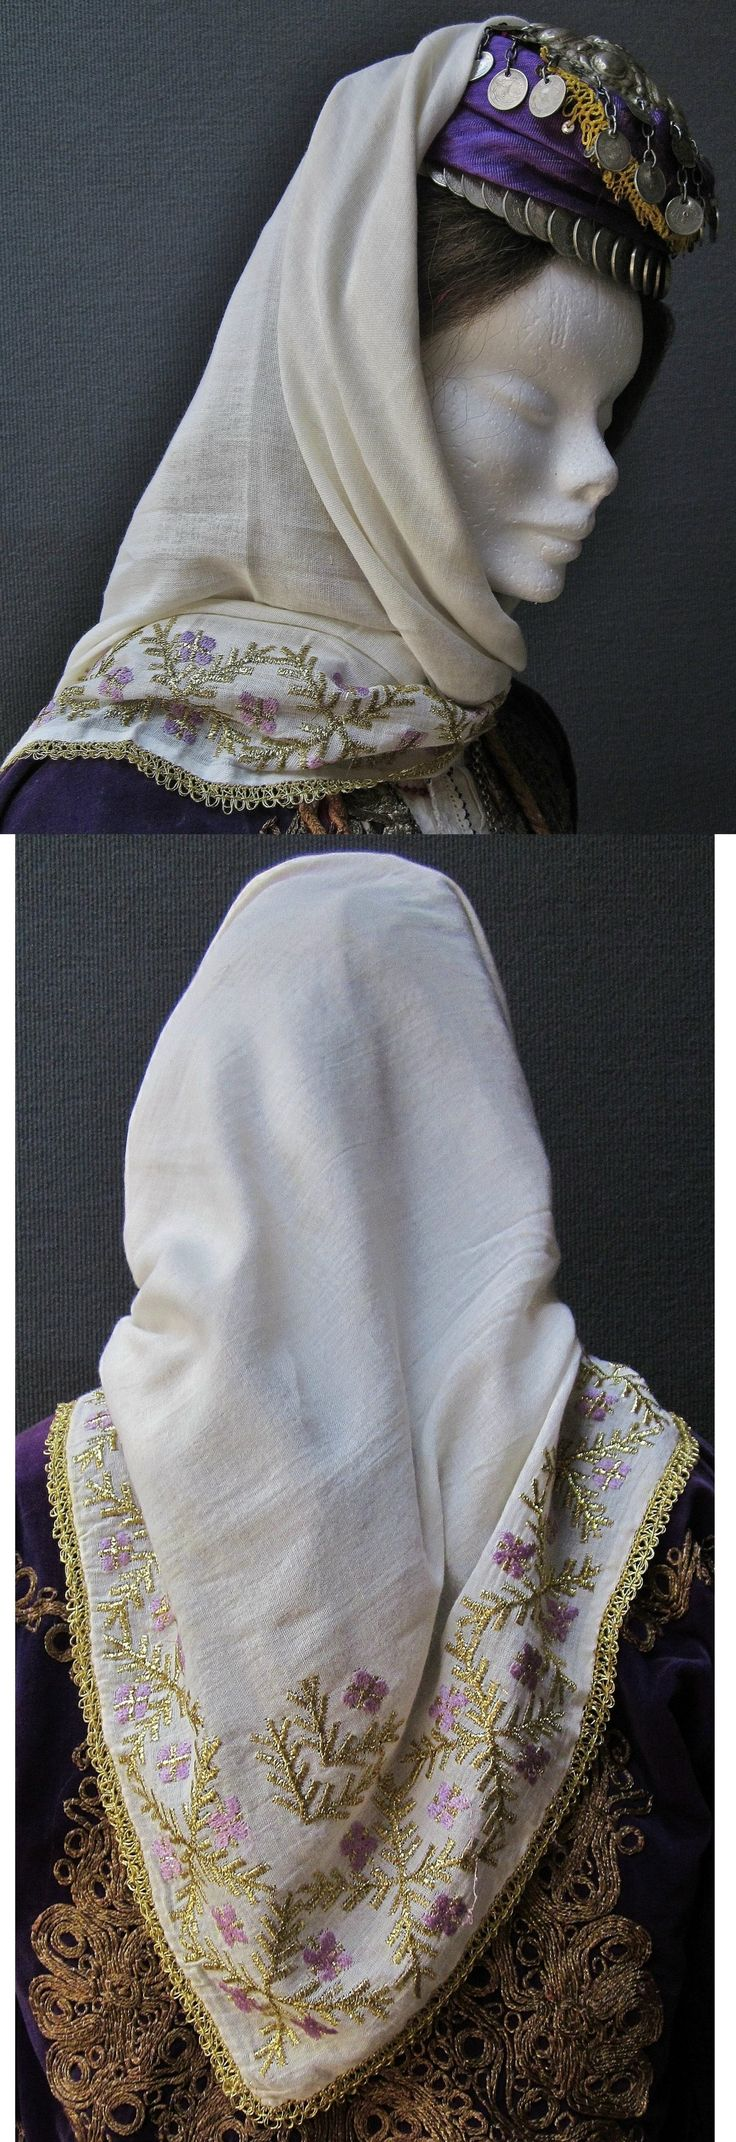 A large 'yazma' (head scarf) from Beypazarı (85 km west of Ankara).  The embroidery is machine made and produced in a semi-artisan manner in a local workshop.  Purchased in Beypazarı in 1994.  (Inv.nr. yaz067 - Kavak Costume Collection - Antwerpen/Belgium).